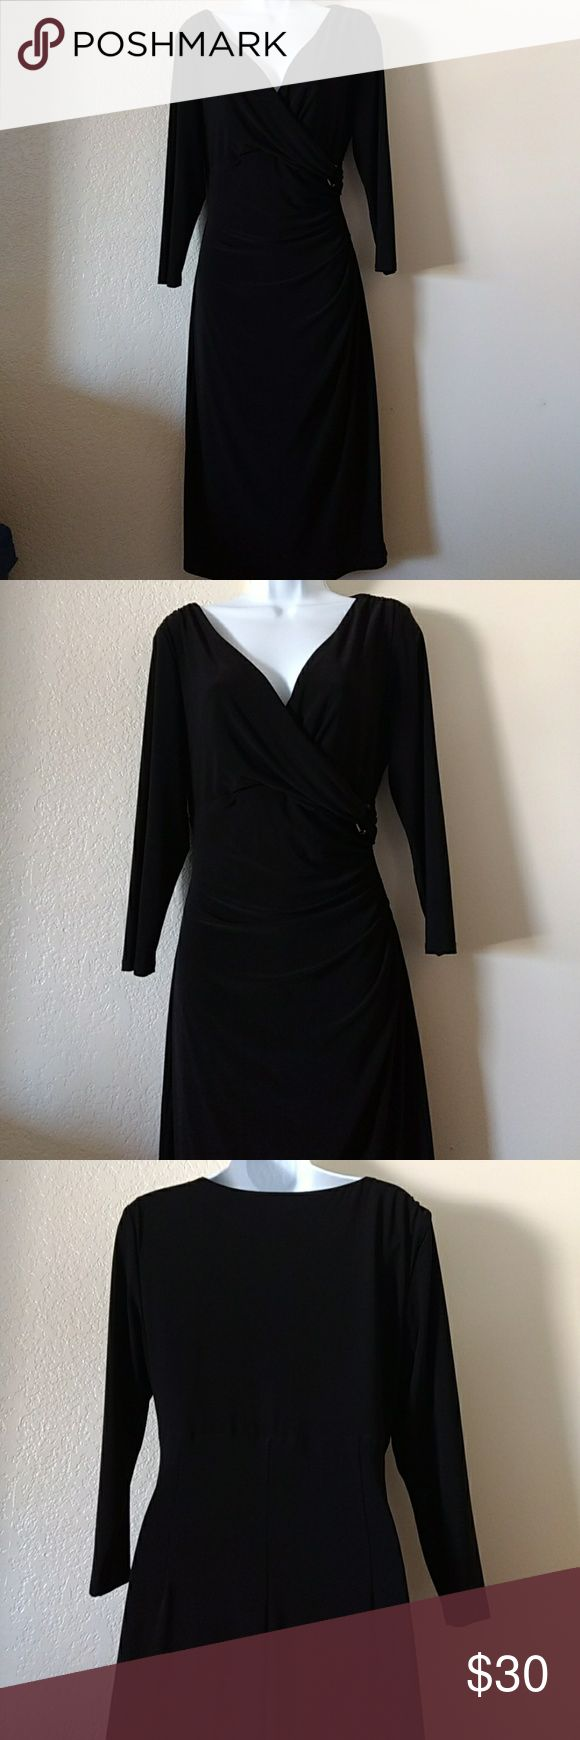 "Ralph Lauren Cross Front Dress Size 12 Black Ralph Lauren cross front sheath dress size 12 V neckline 3/4 sleeve black 95% polyester 5% elastane approx measurements armpit to armpit 21 1/2""  waist 30"" length 43"" in excellent pre-owned condition Ralph Lauren Dresses"